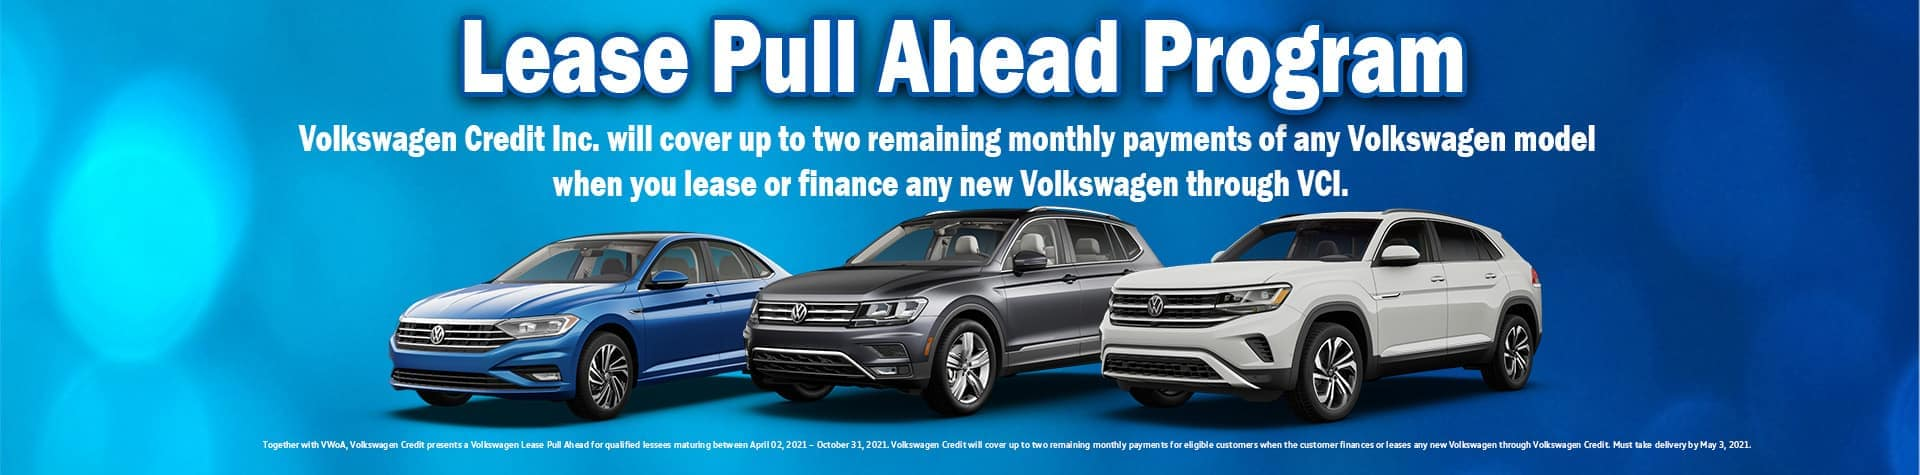 Lease-pull-ahead-banner